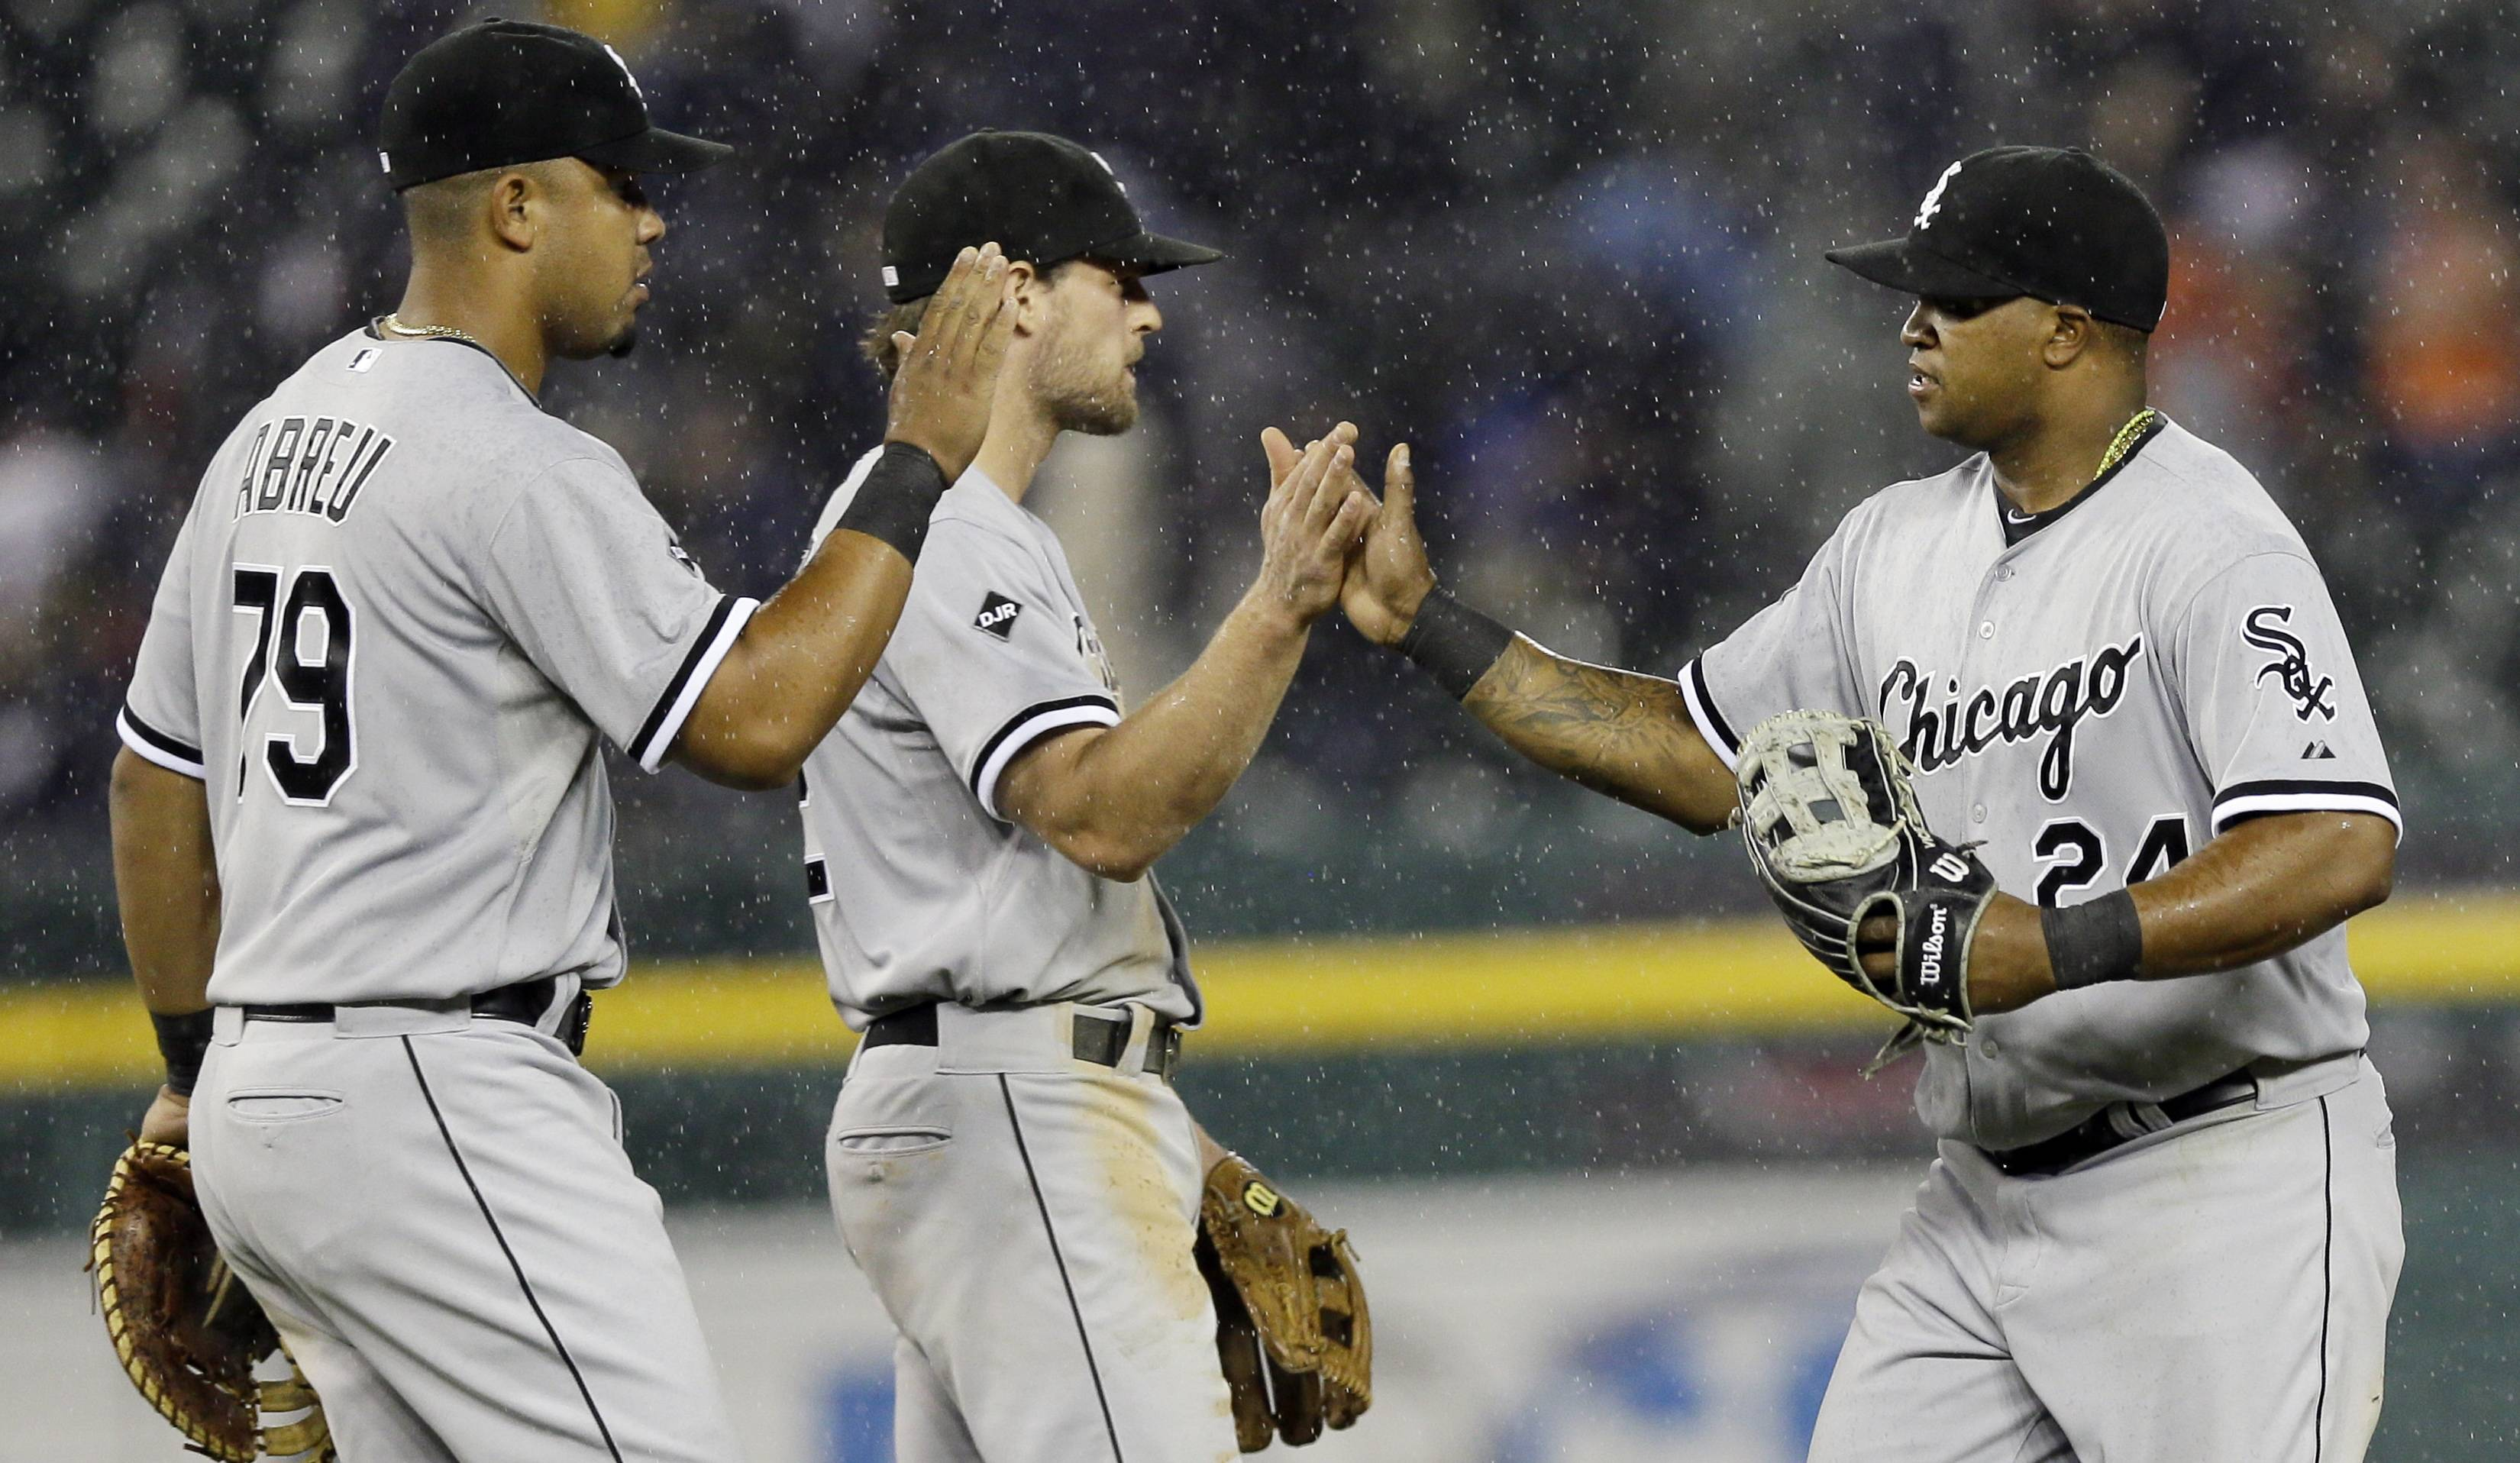 White Sox right fielder Dayan Viciedo, right, high-fives teammates Jose Abreu and Conor Gillaspie after their 3-1 win Monday over the Detroit Tigers.